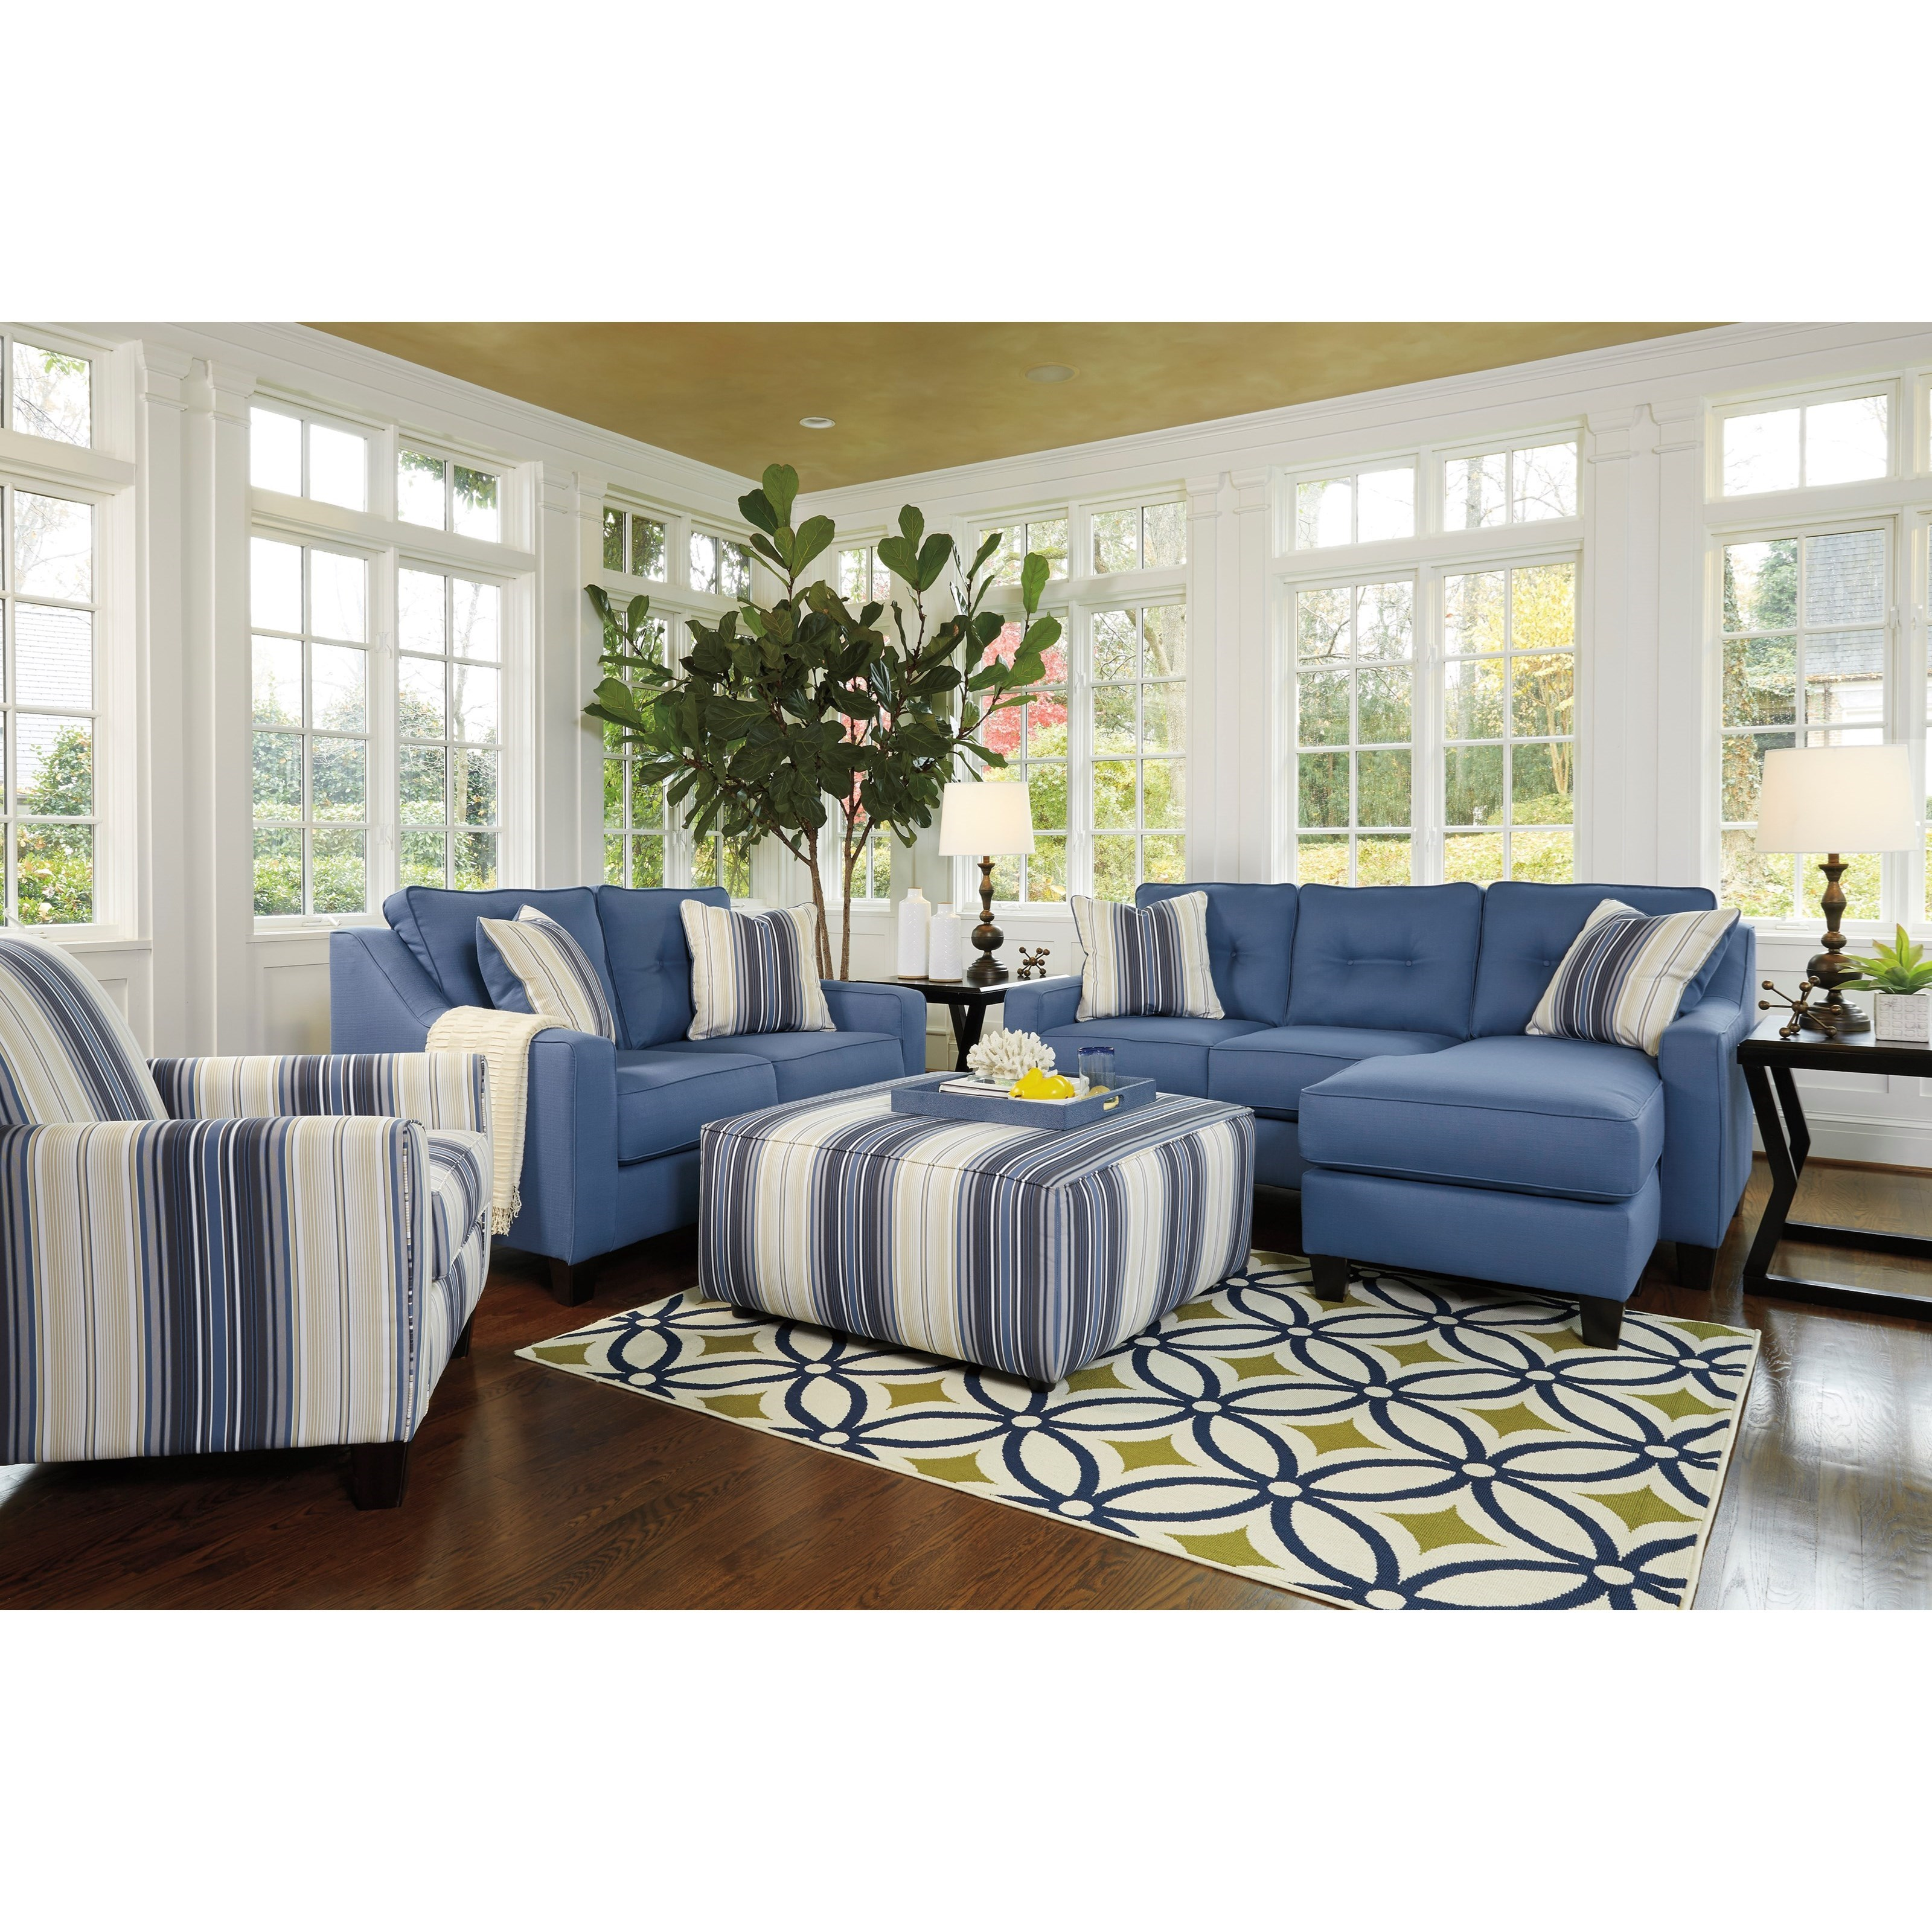 Benchcraft Aldie Nuvella Stationary Living Room Group - Item Number: 68703 Living Room Group 3